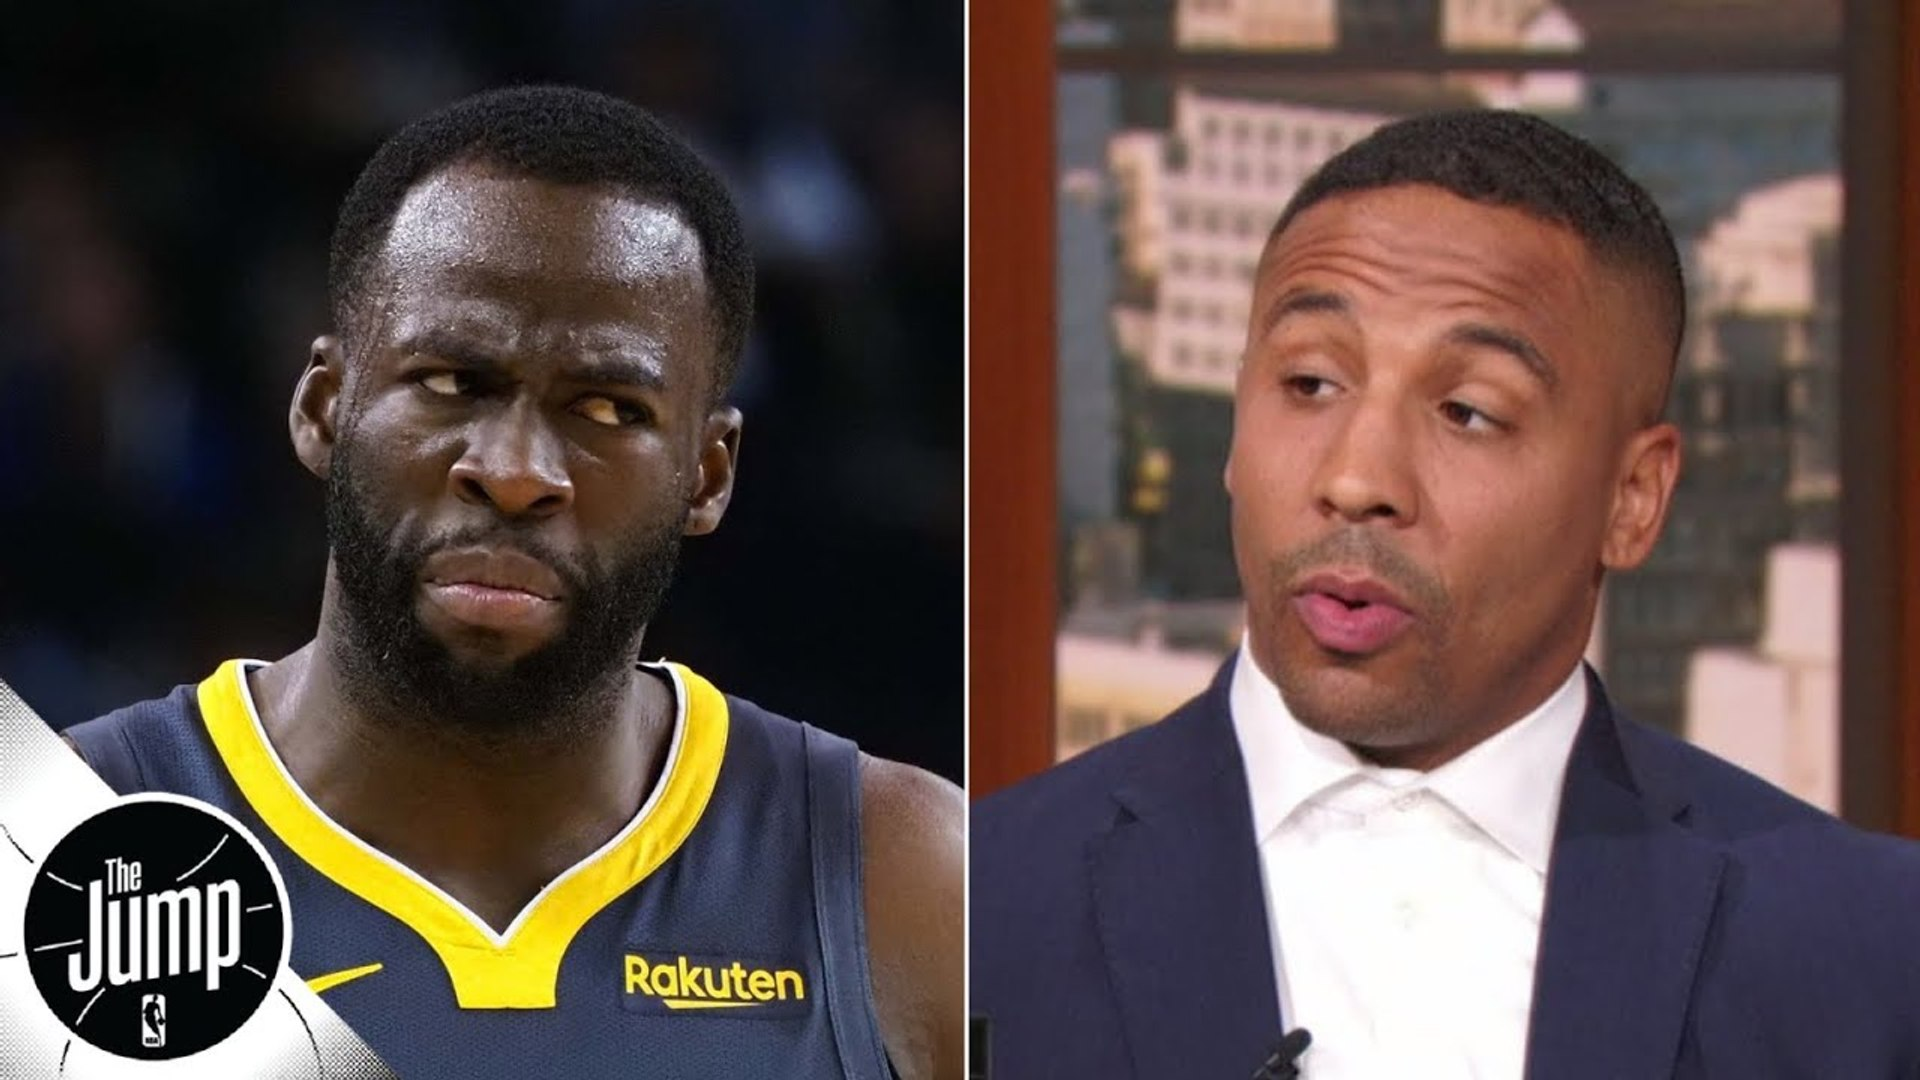 Boxer and Warriors fan Andre Ward reacts to Draymond Green's exclusive interview _ The Jump